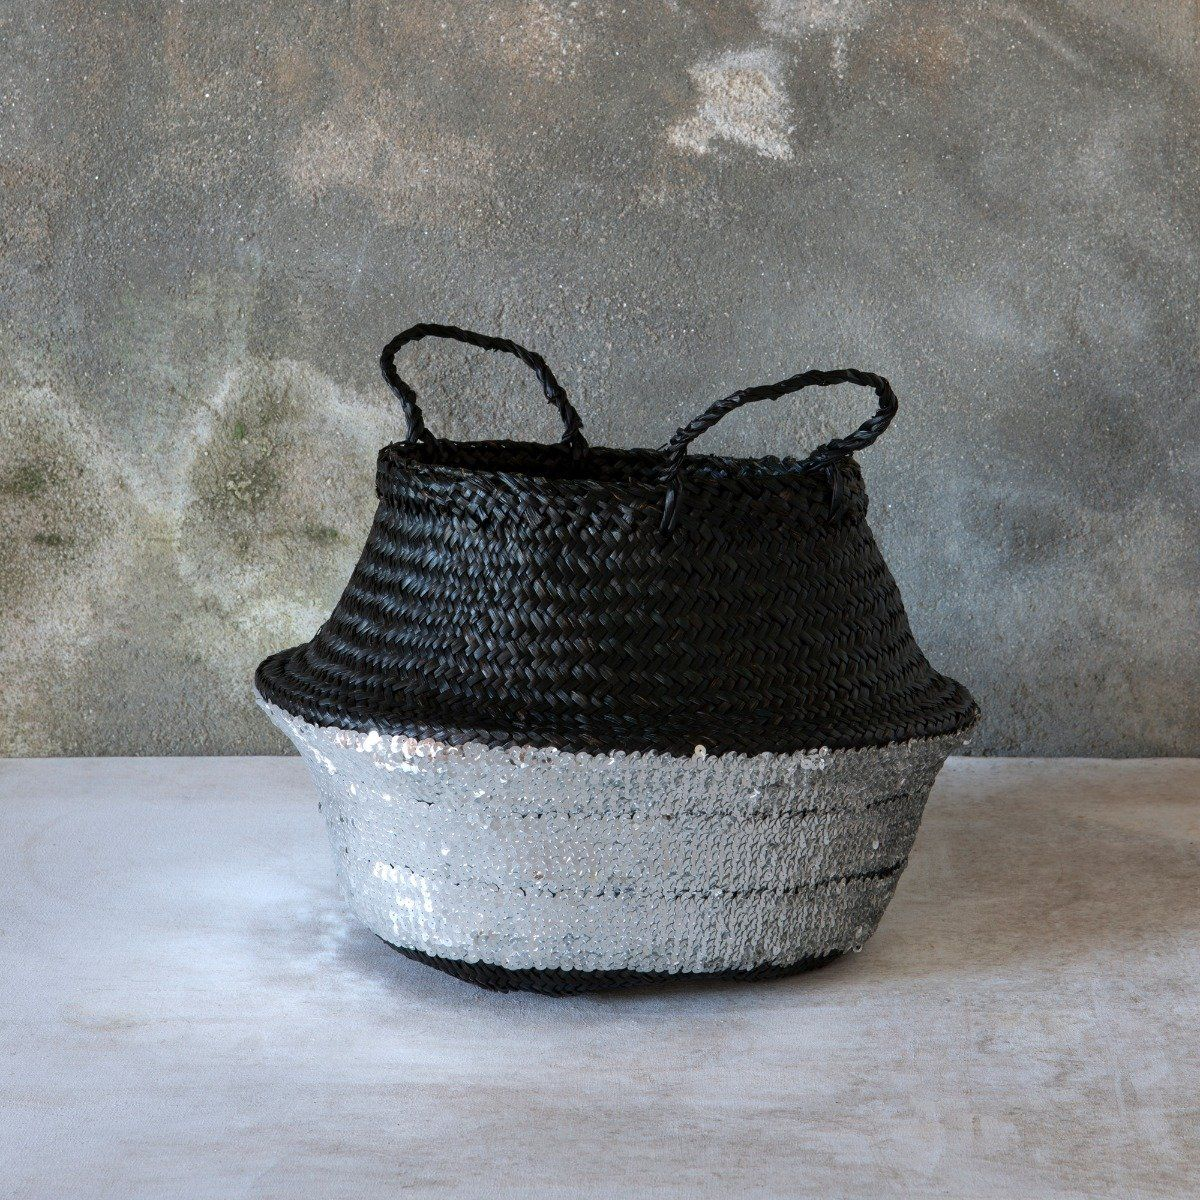 Gold Black Sequin Belly Basket Med Seagrass Planter Toy Laundry Basket Toulouse